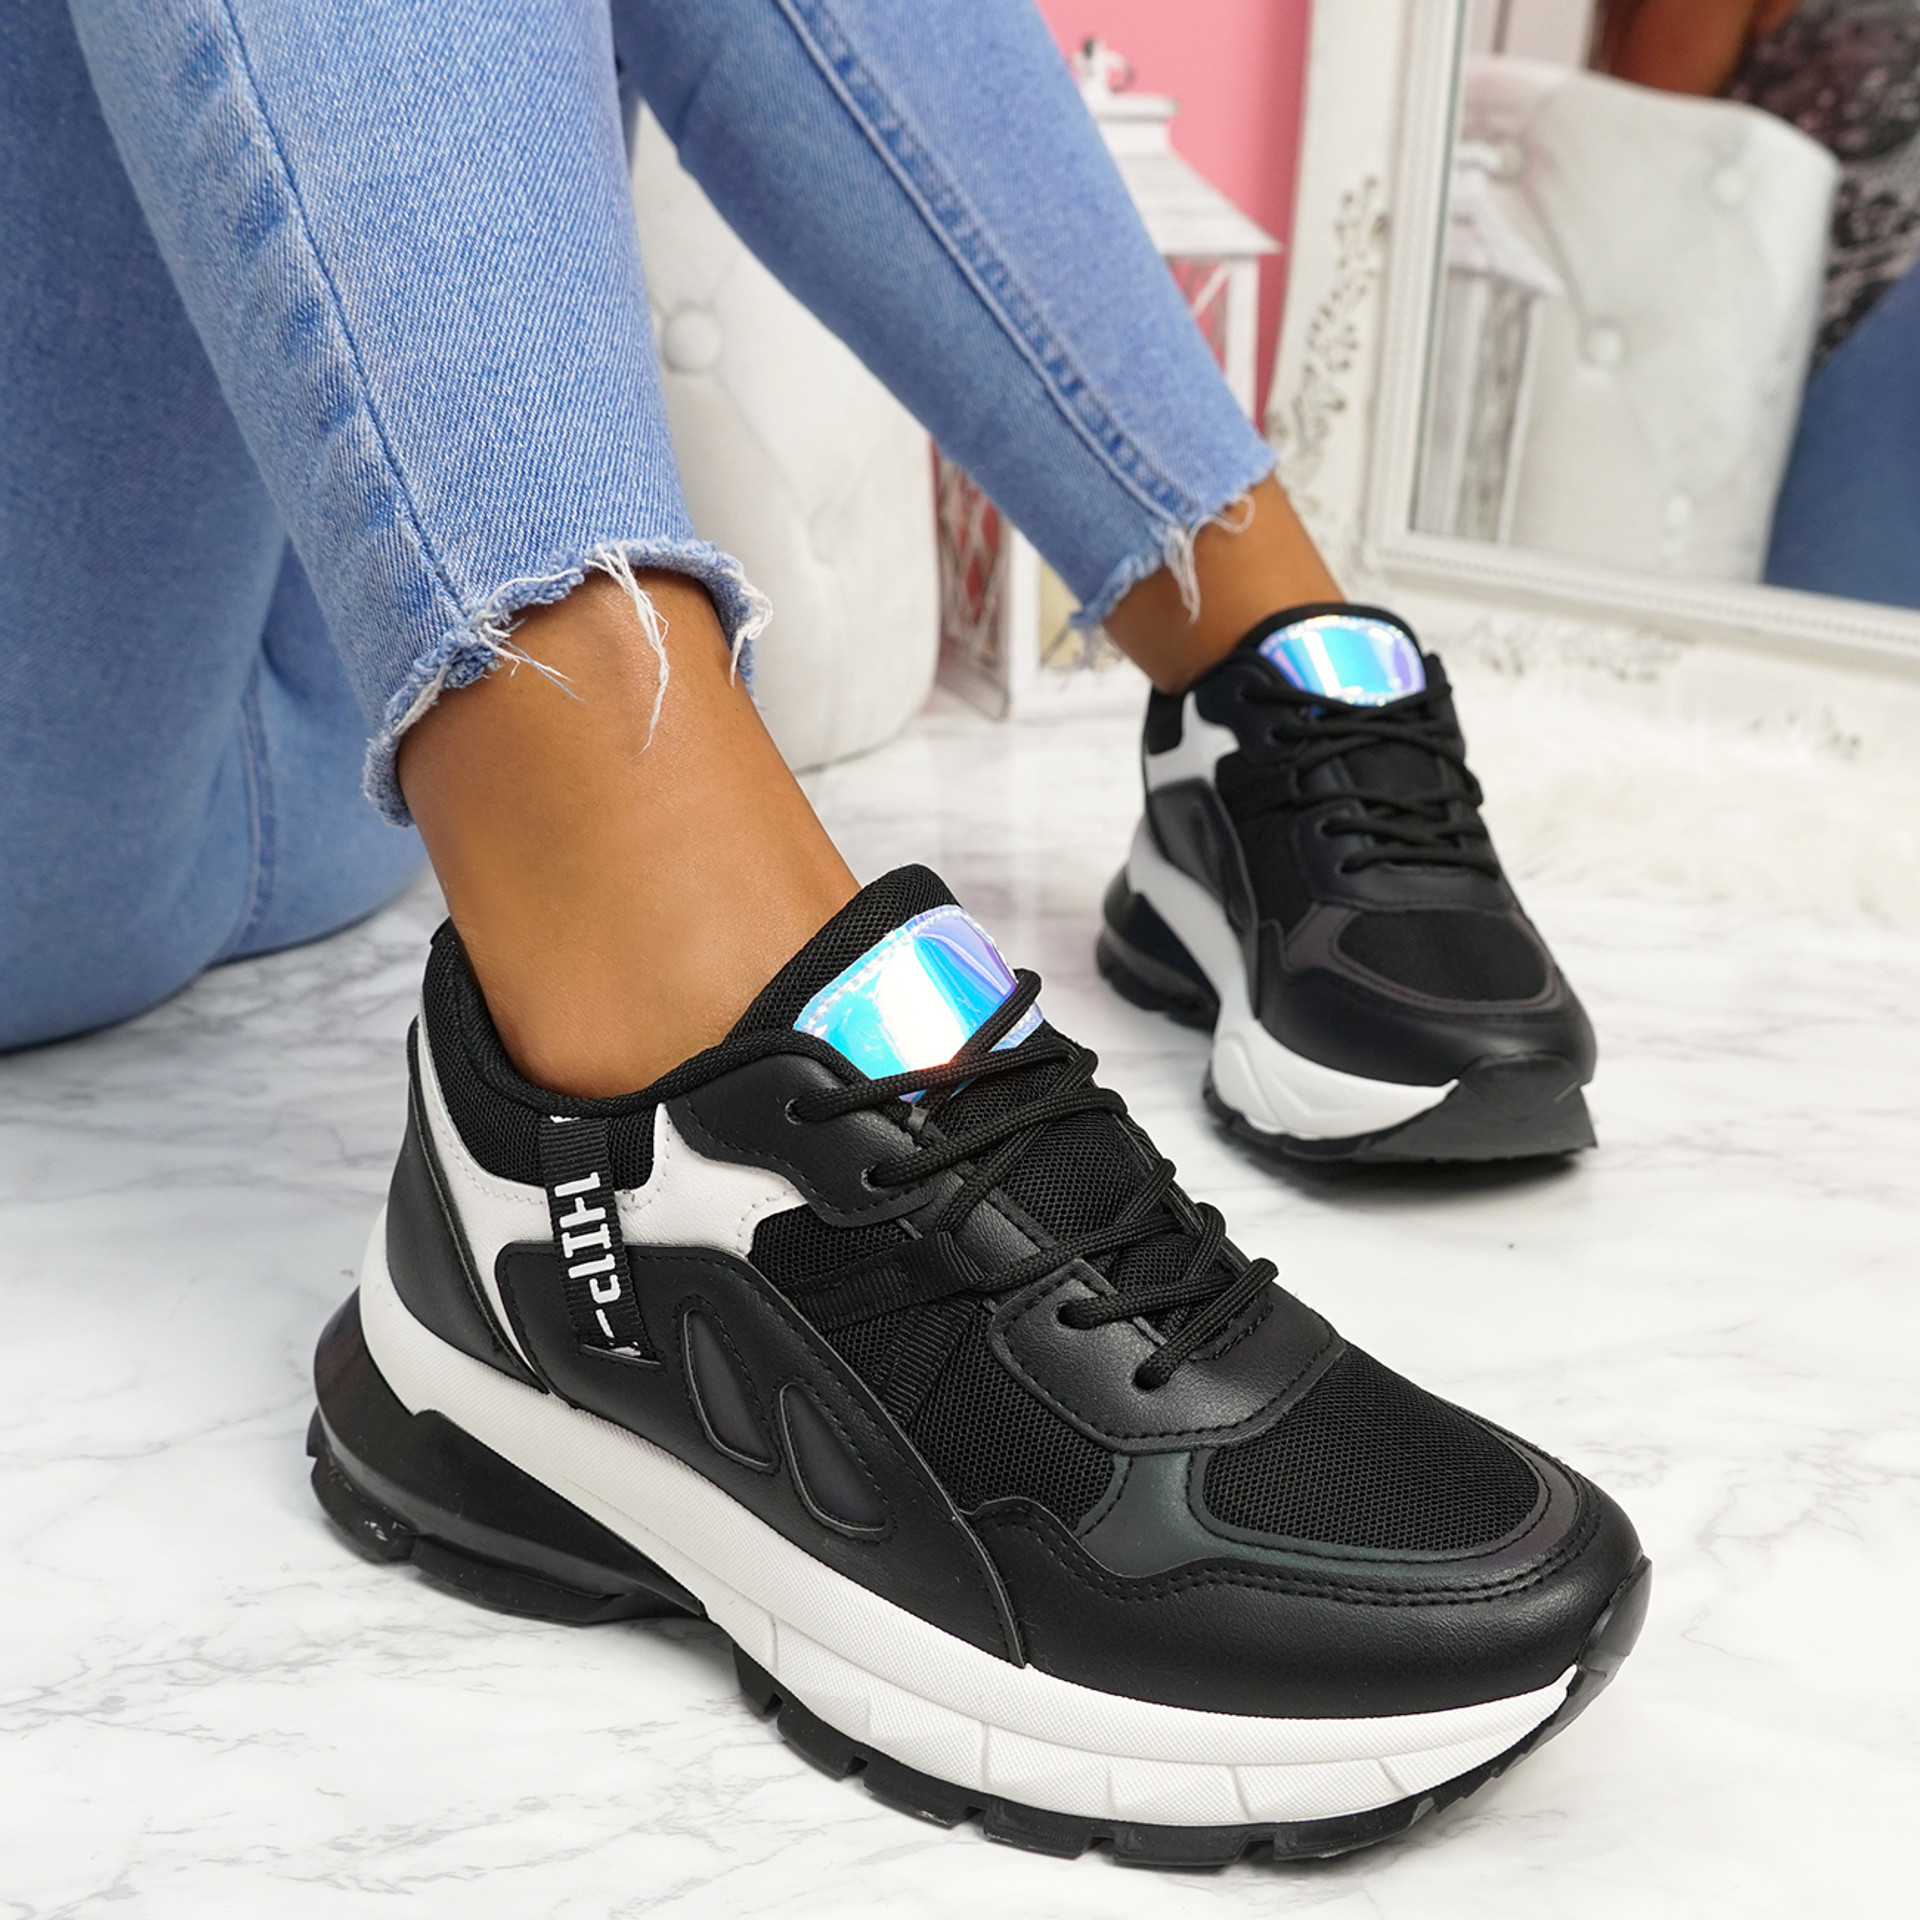 Nuppy Black Chunky Sneakers